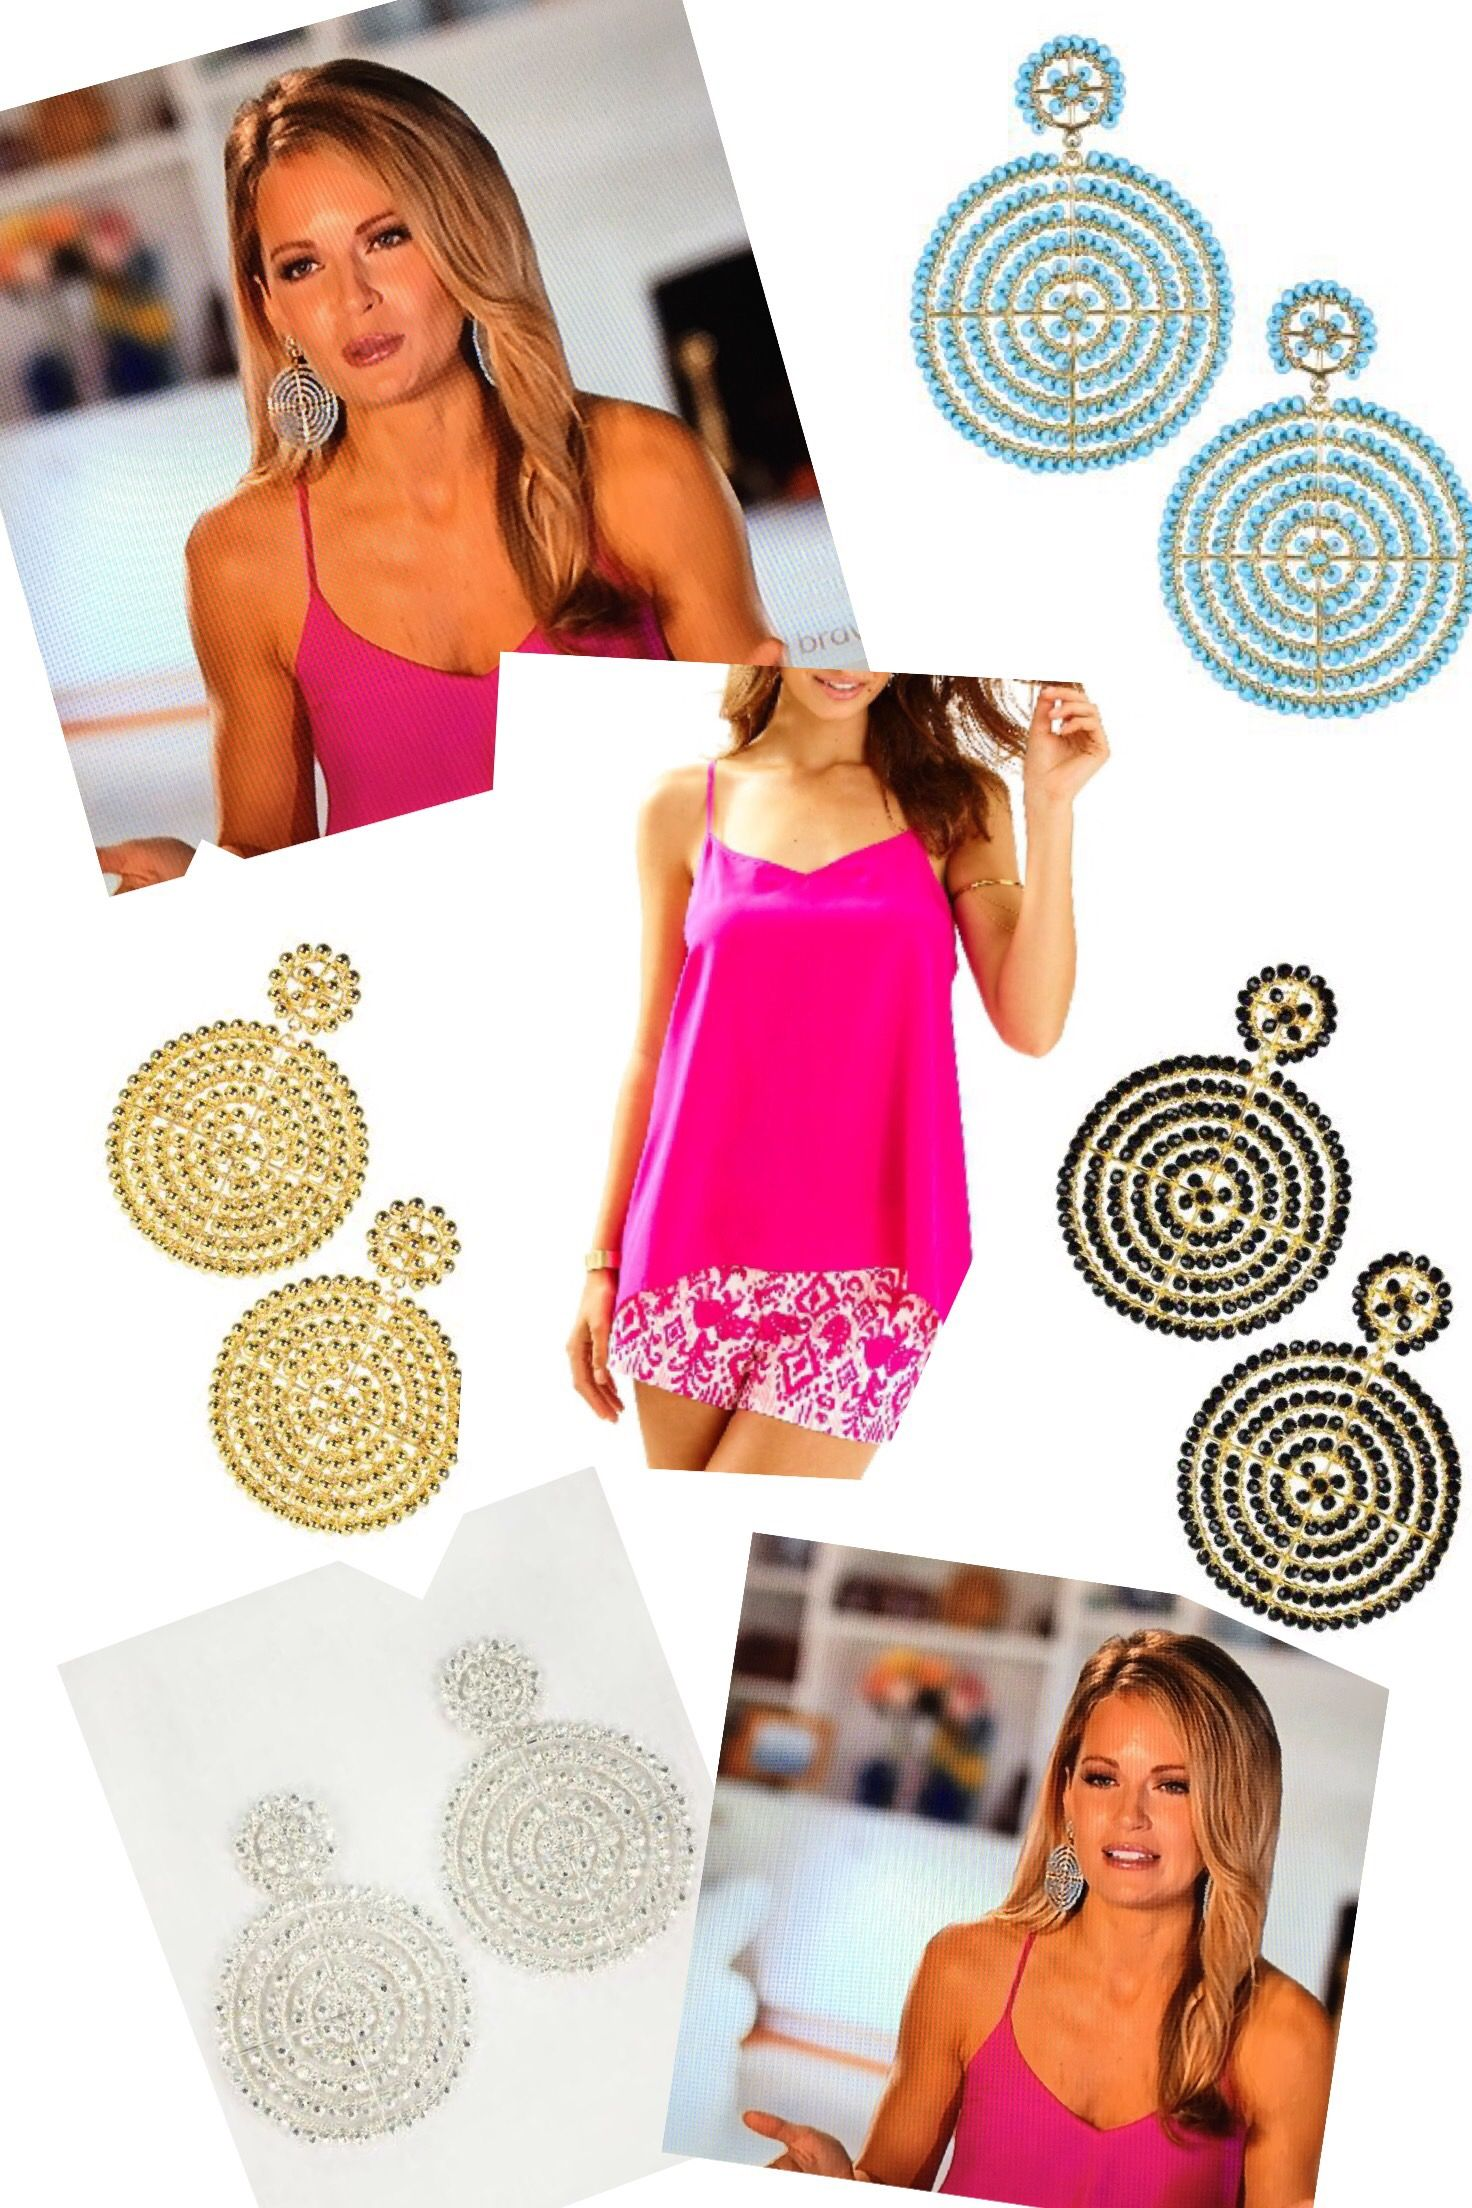 a4fb82713 Cameran Eubanks' Pink Interview Tank Top & Silver Disk Earrings http://